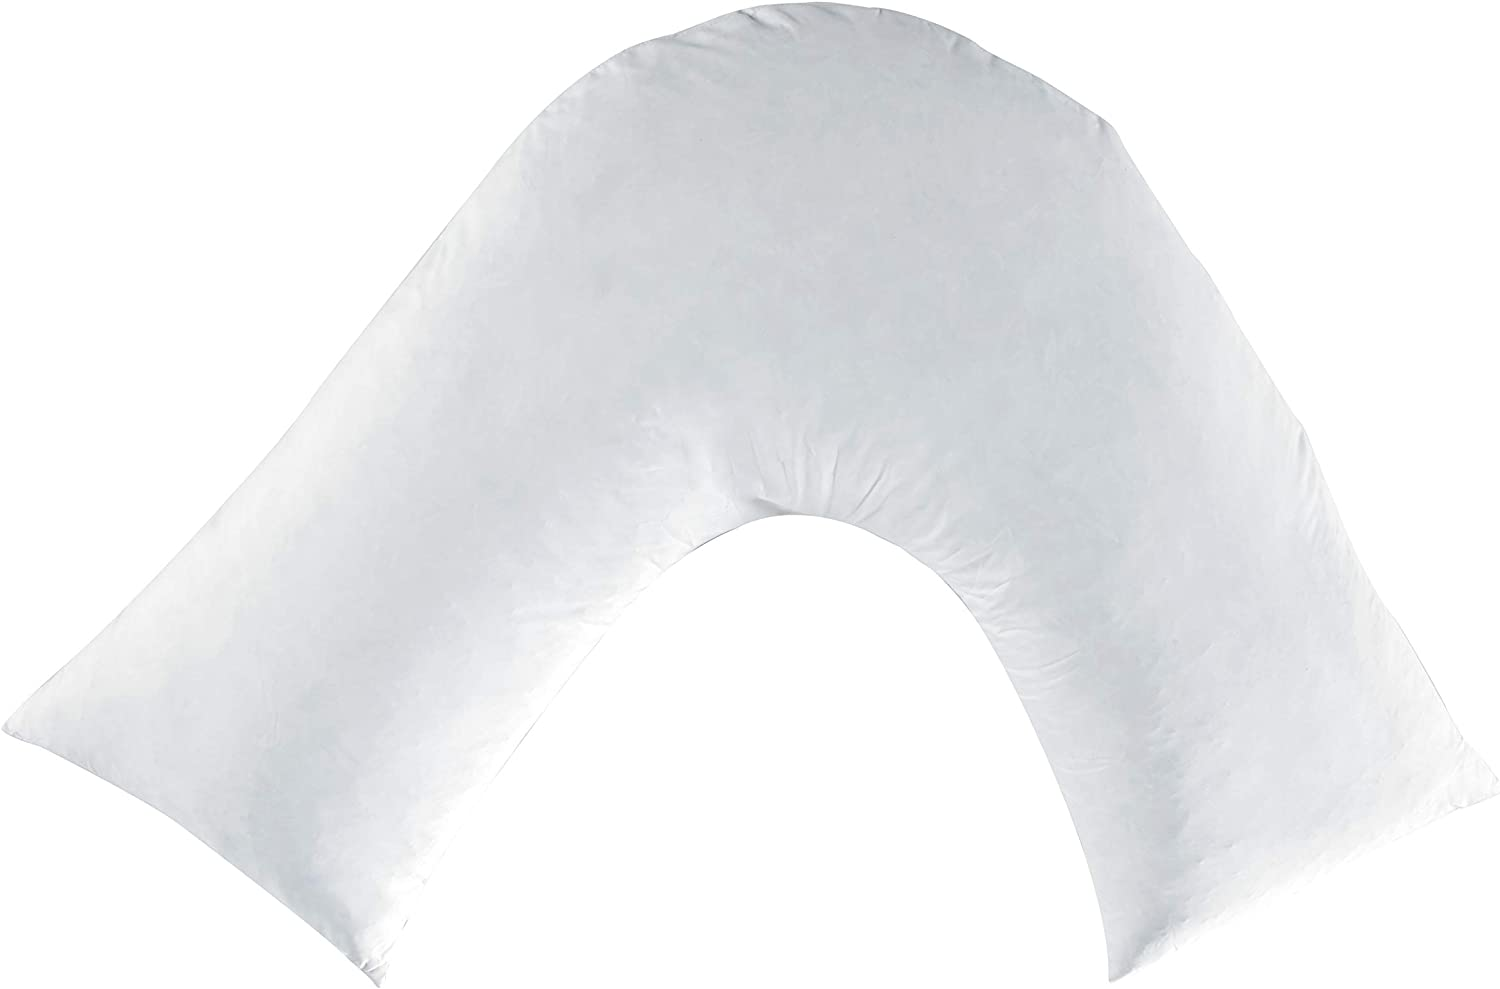 ARLINEN V Shaped Pillow Duck Feather /& down Extra Filled Comfort pillow for Back /& Neck Support